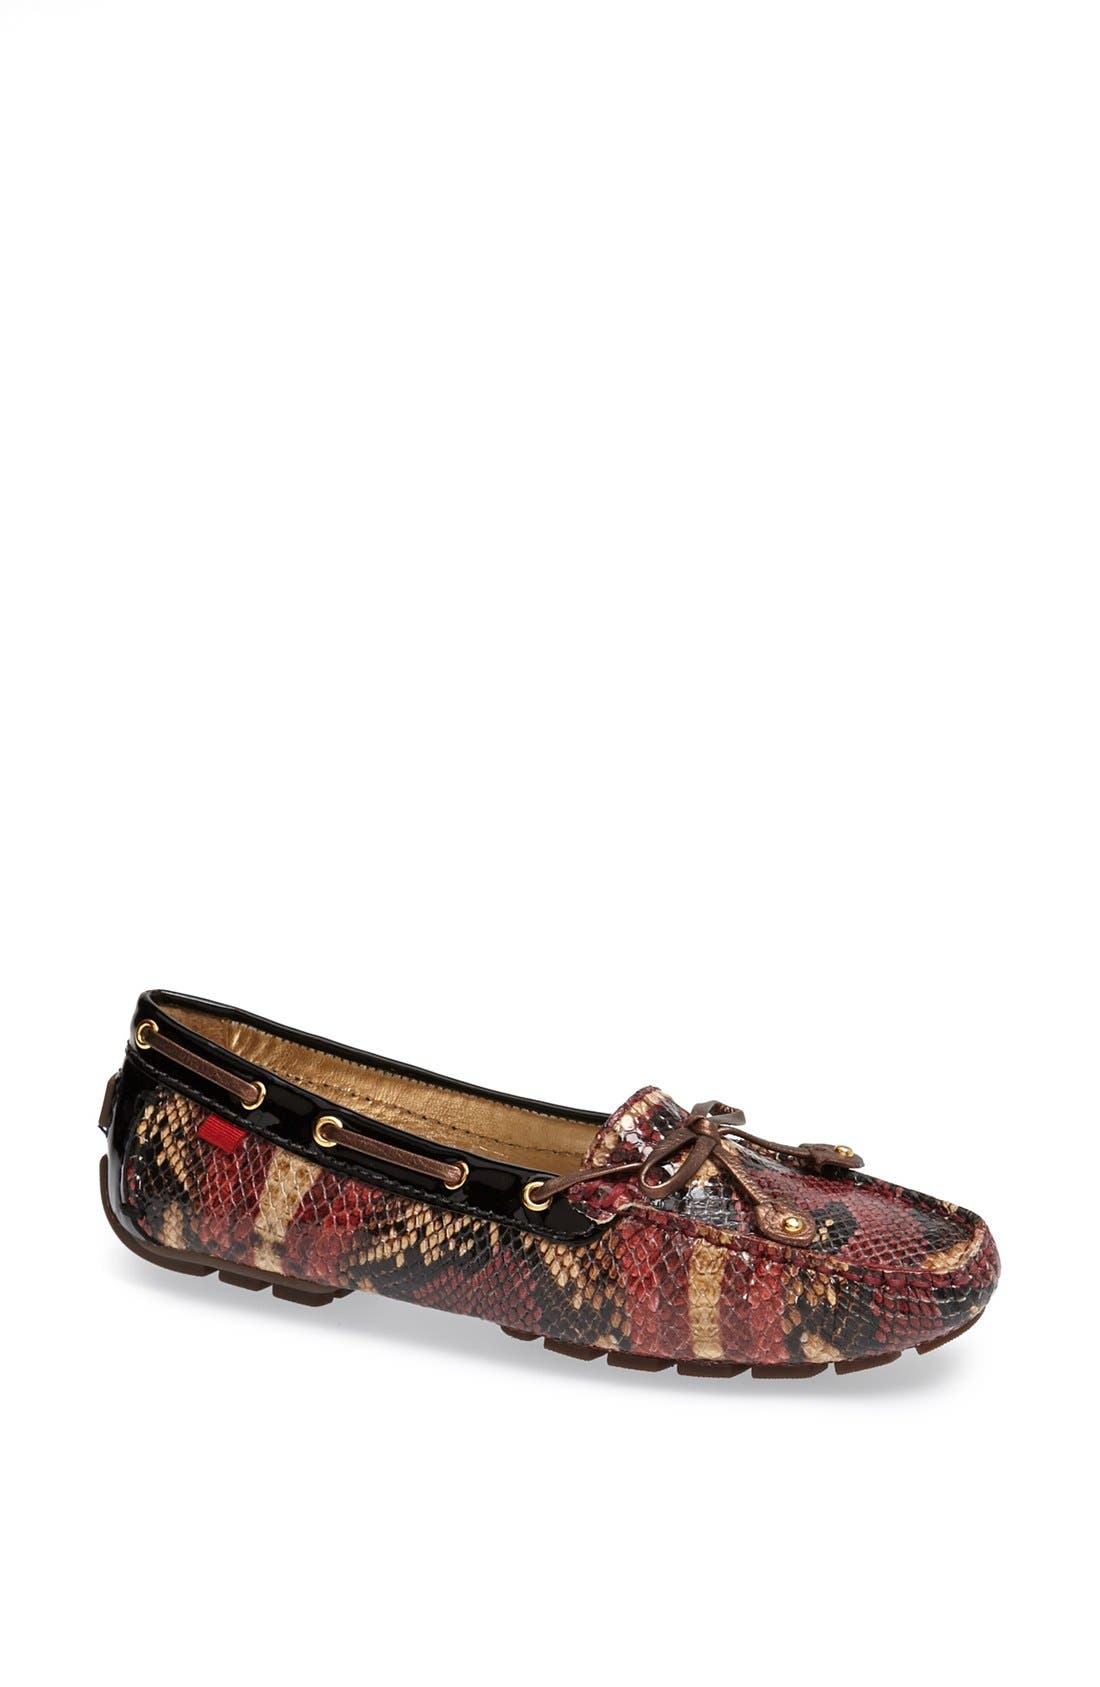 Main Image - Marc Joseph New York 'Cypress Hill' Loafer